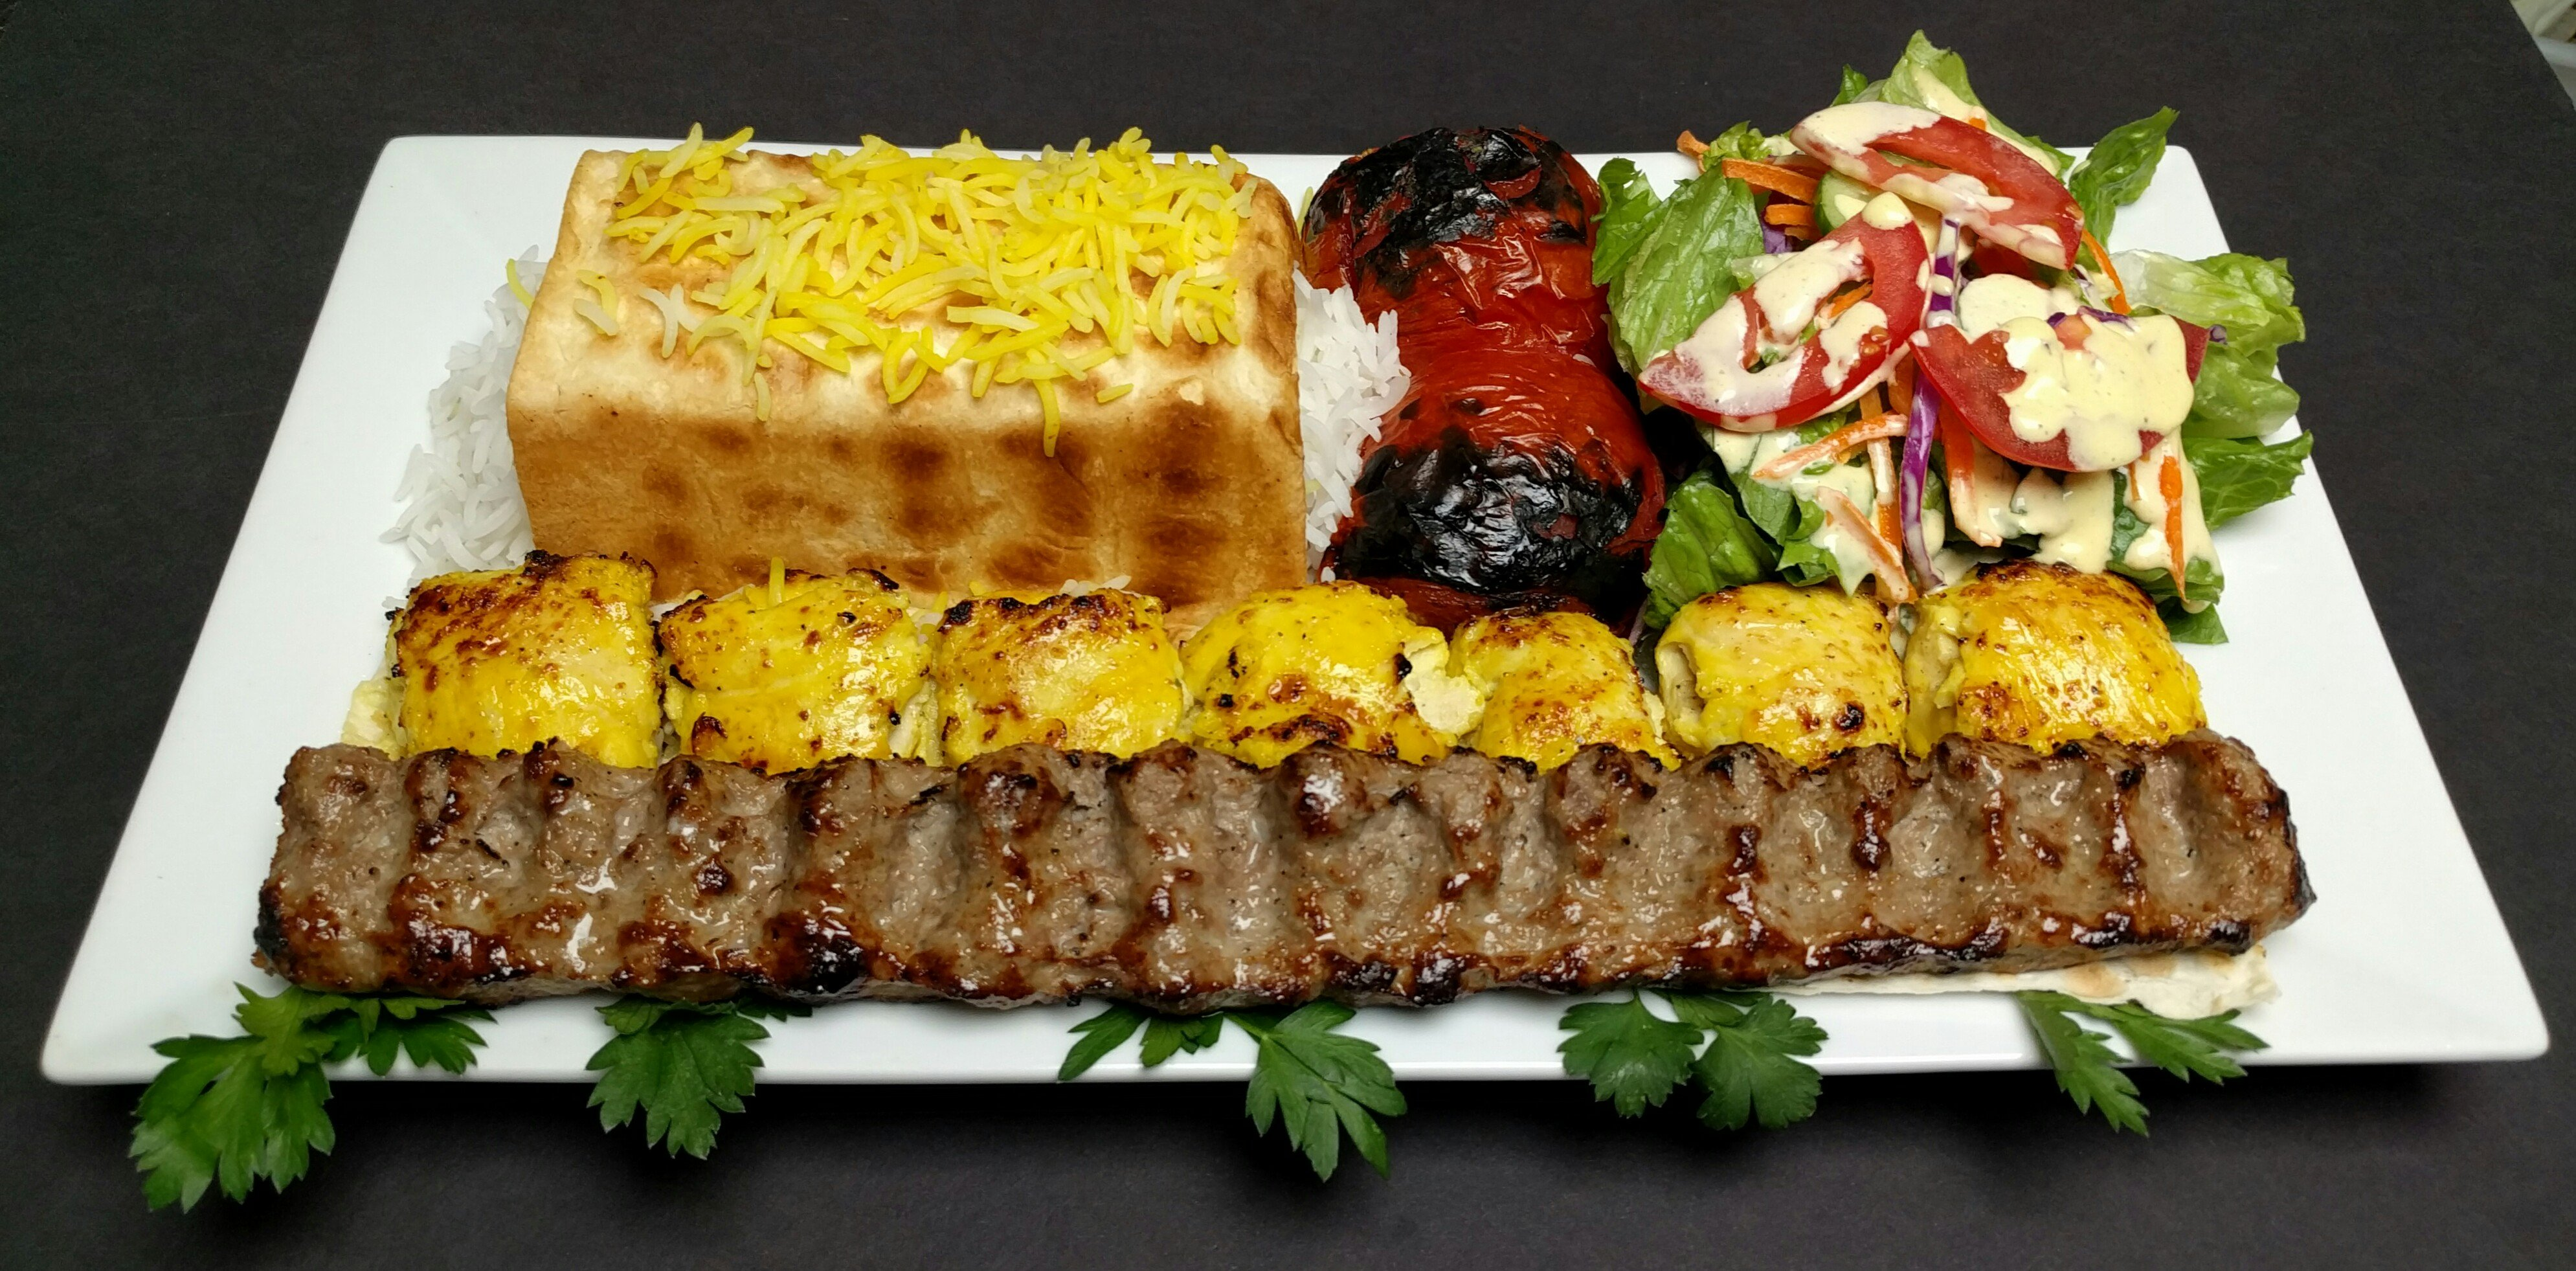 Persian food, Authentic Meditterian, Authentic Italian food for dine-in, pick-up or delivery, Poway, San Diego